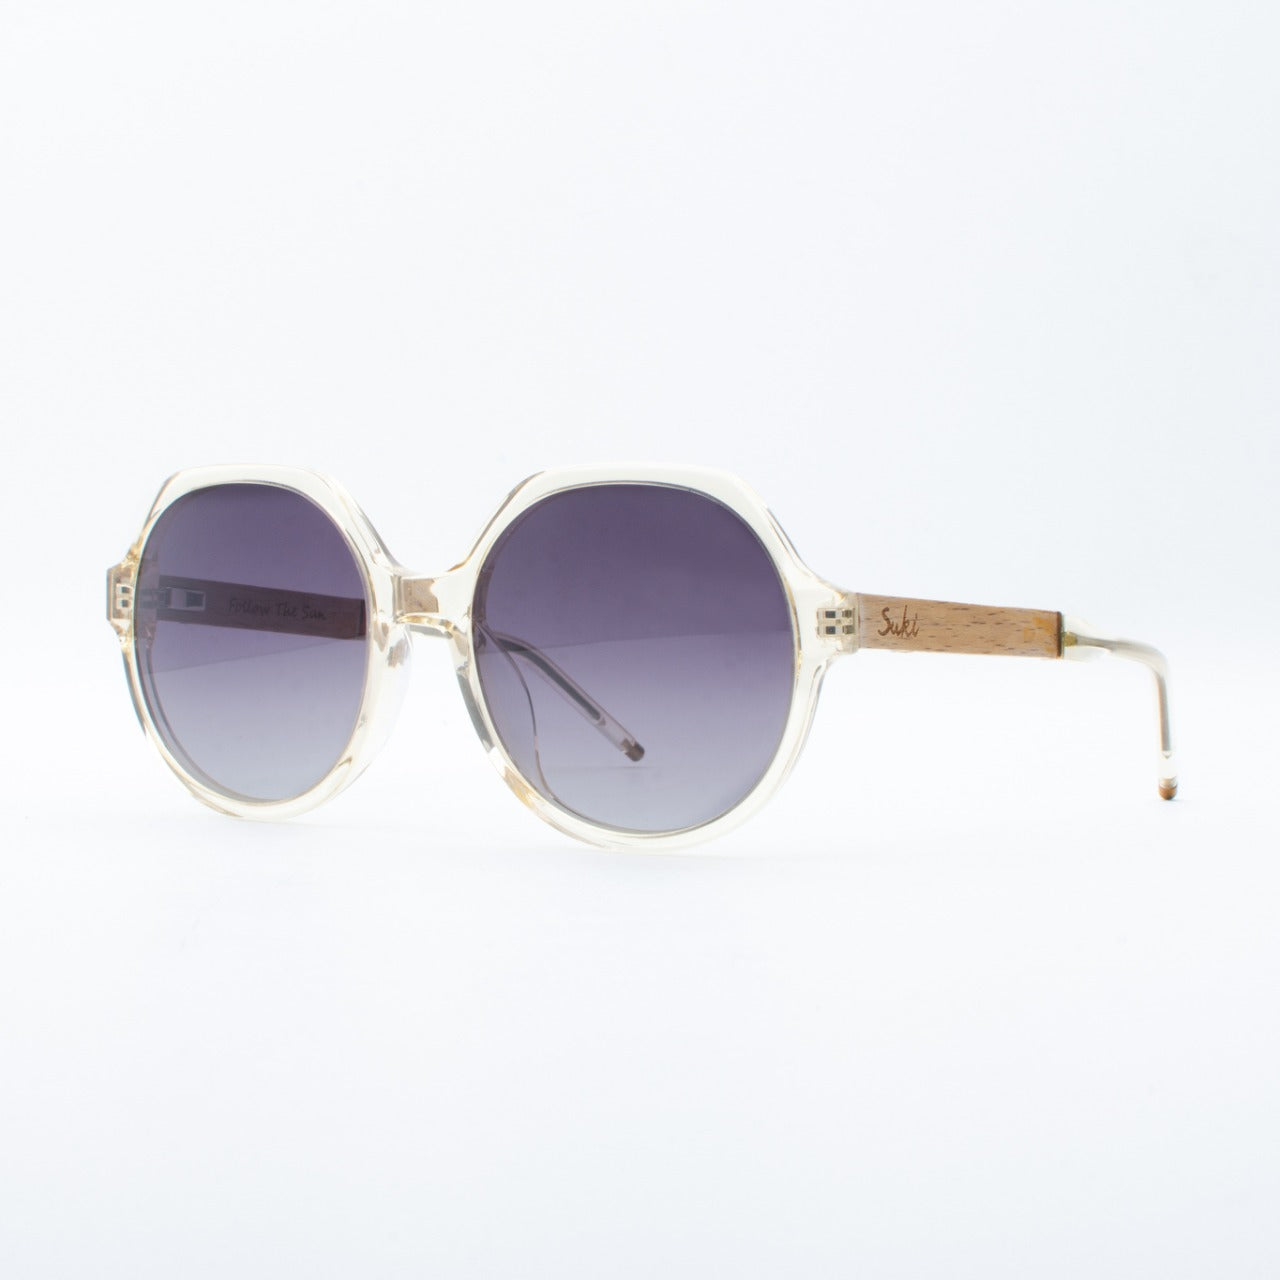 WOODEN SUNGLASSES MAYA ACE TRANS SUKI